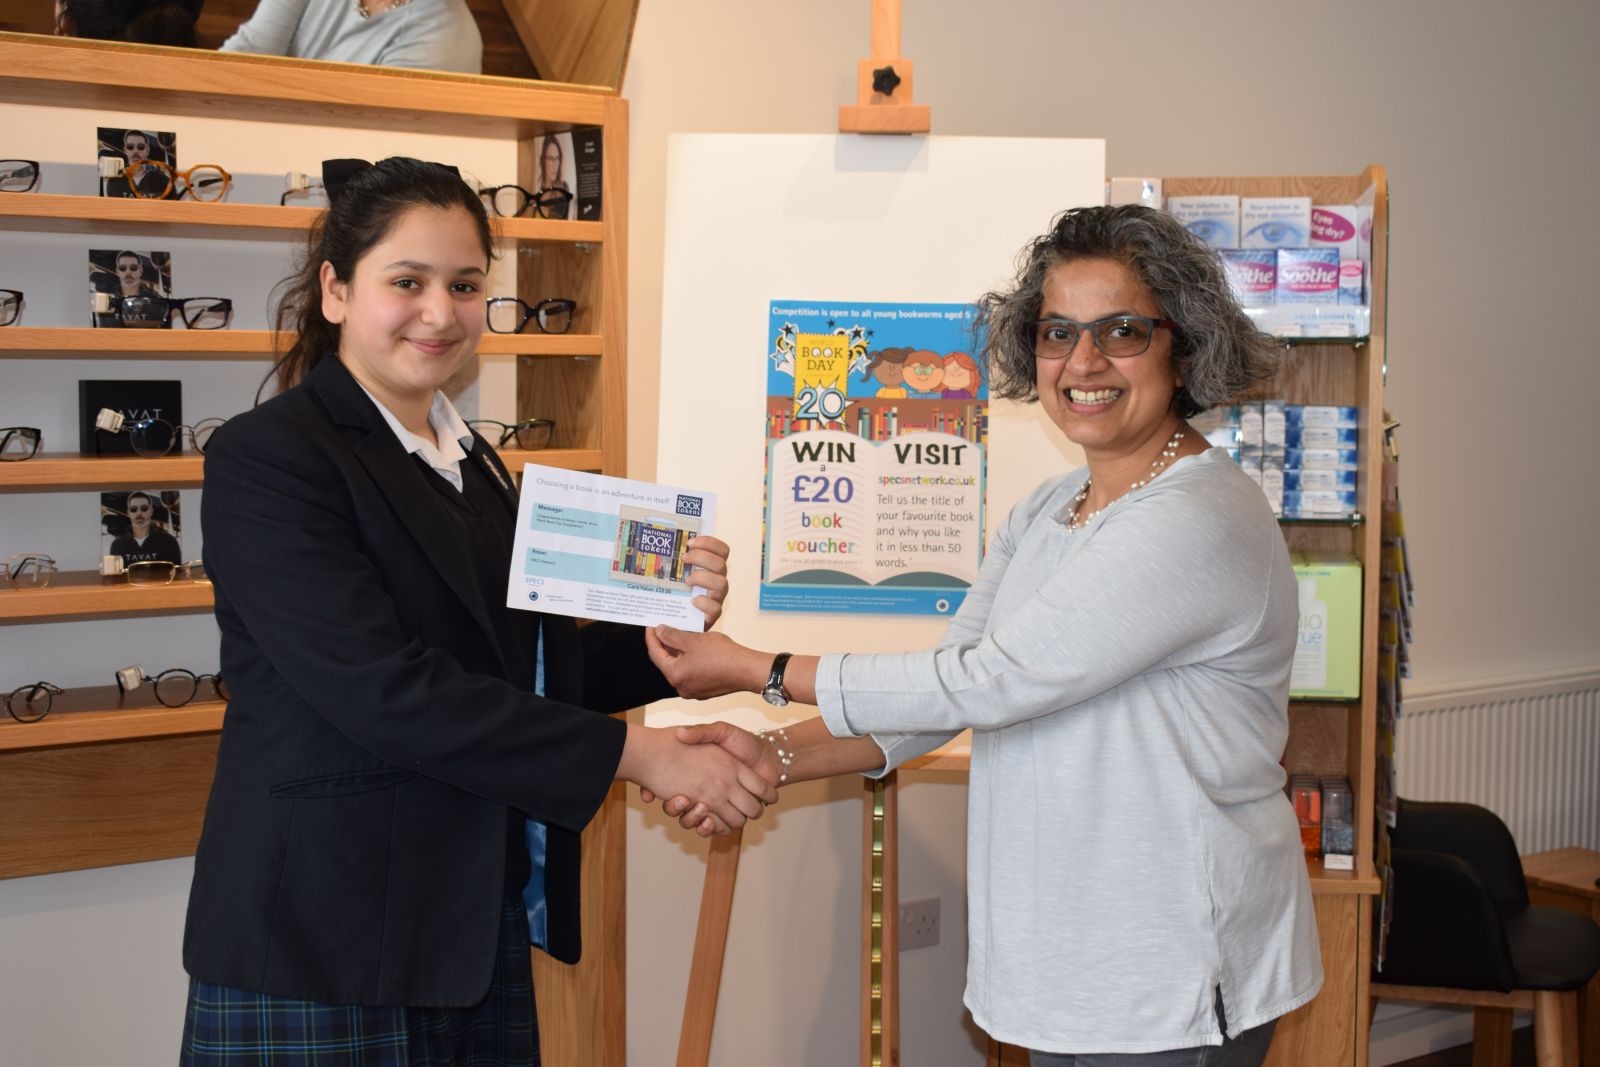 Siya collected her book voucher from Eyes on the Common Opticians, Ealing Common